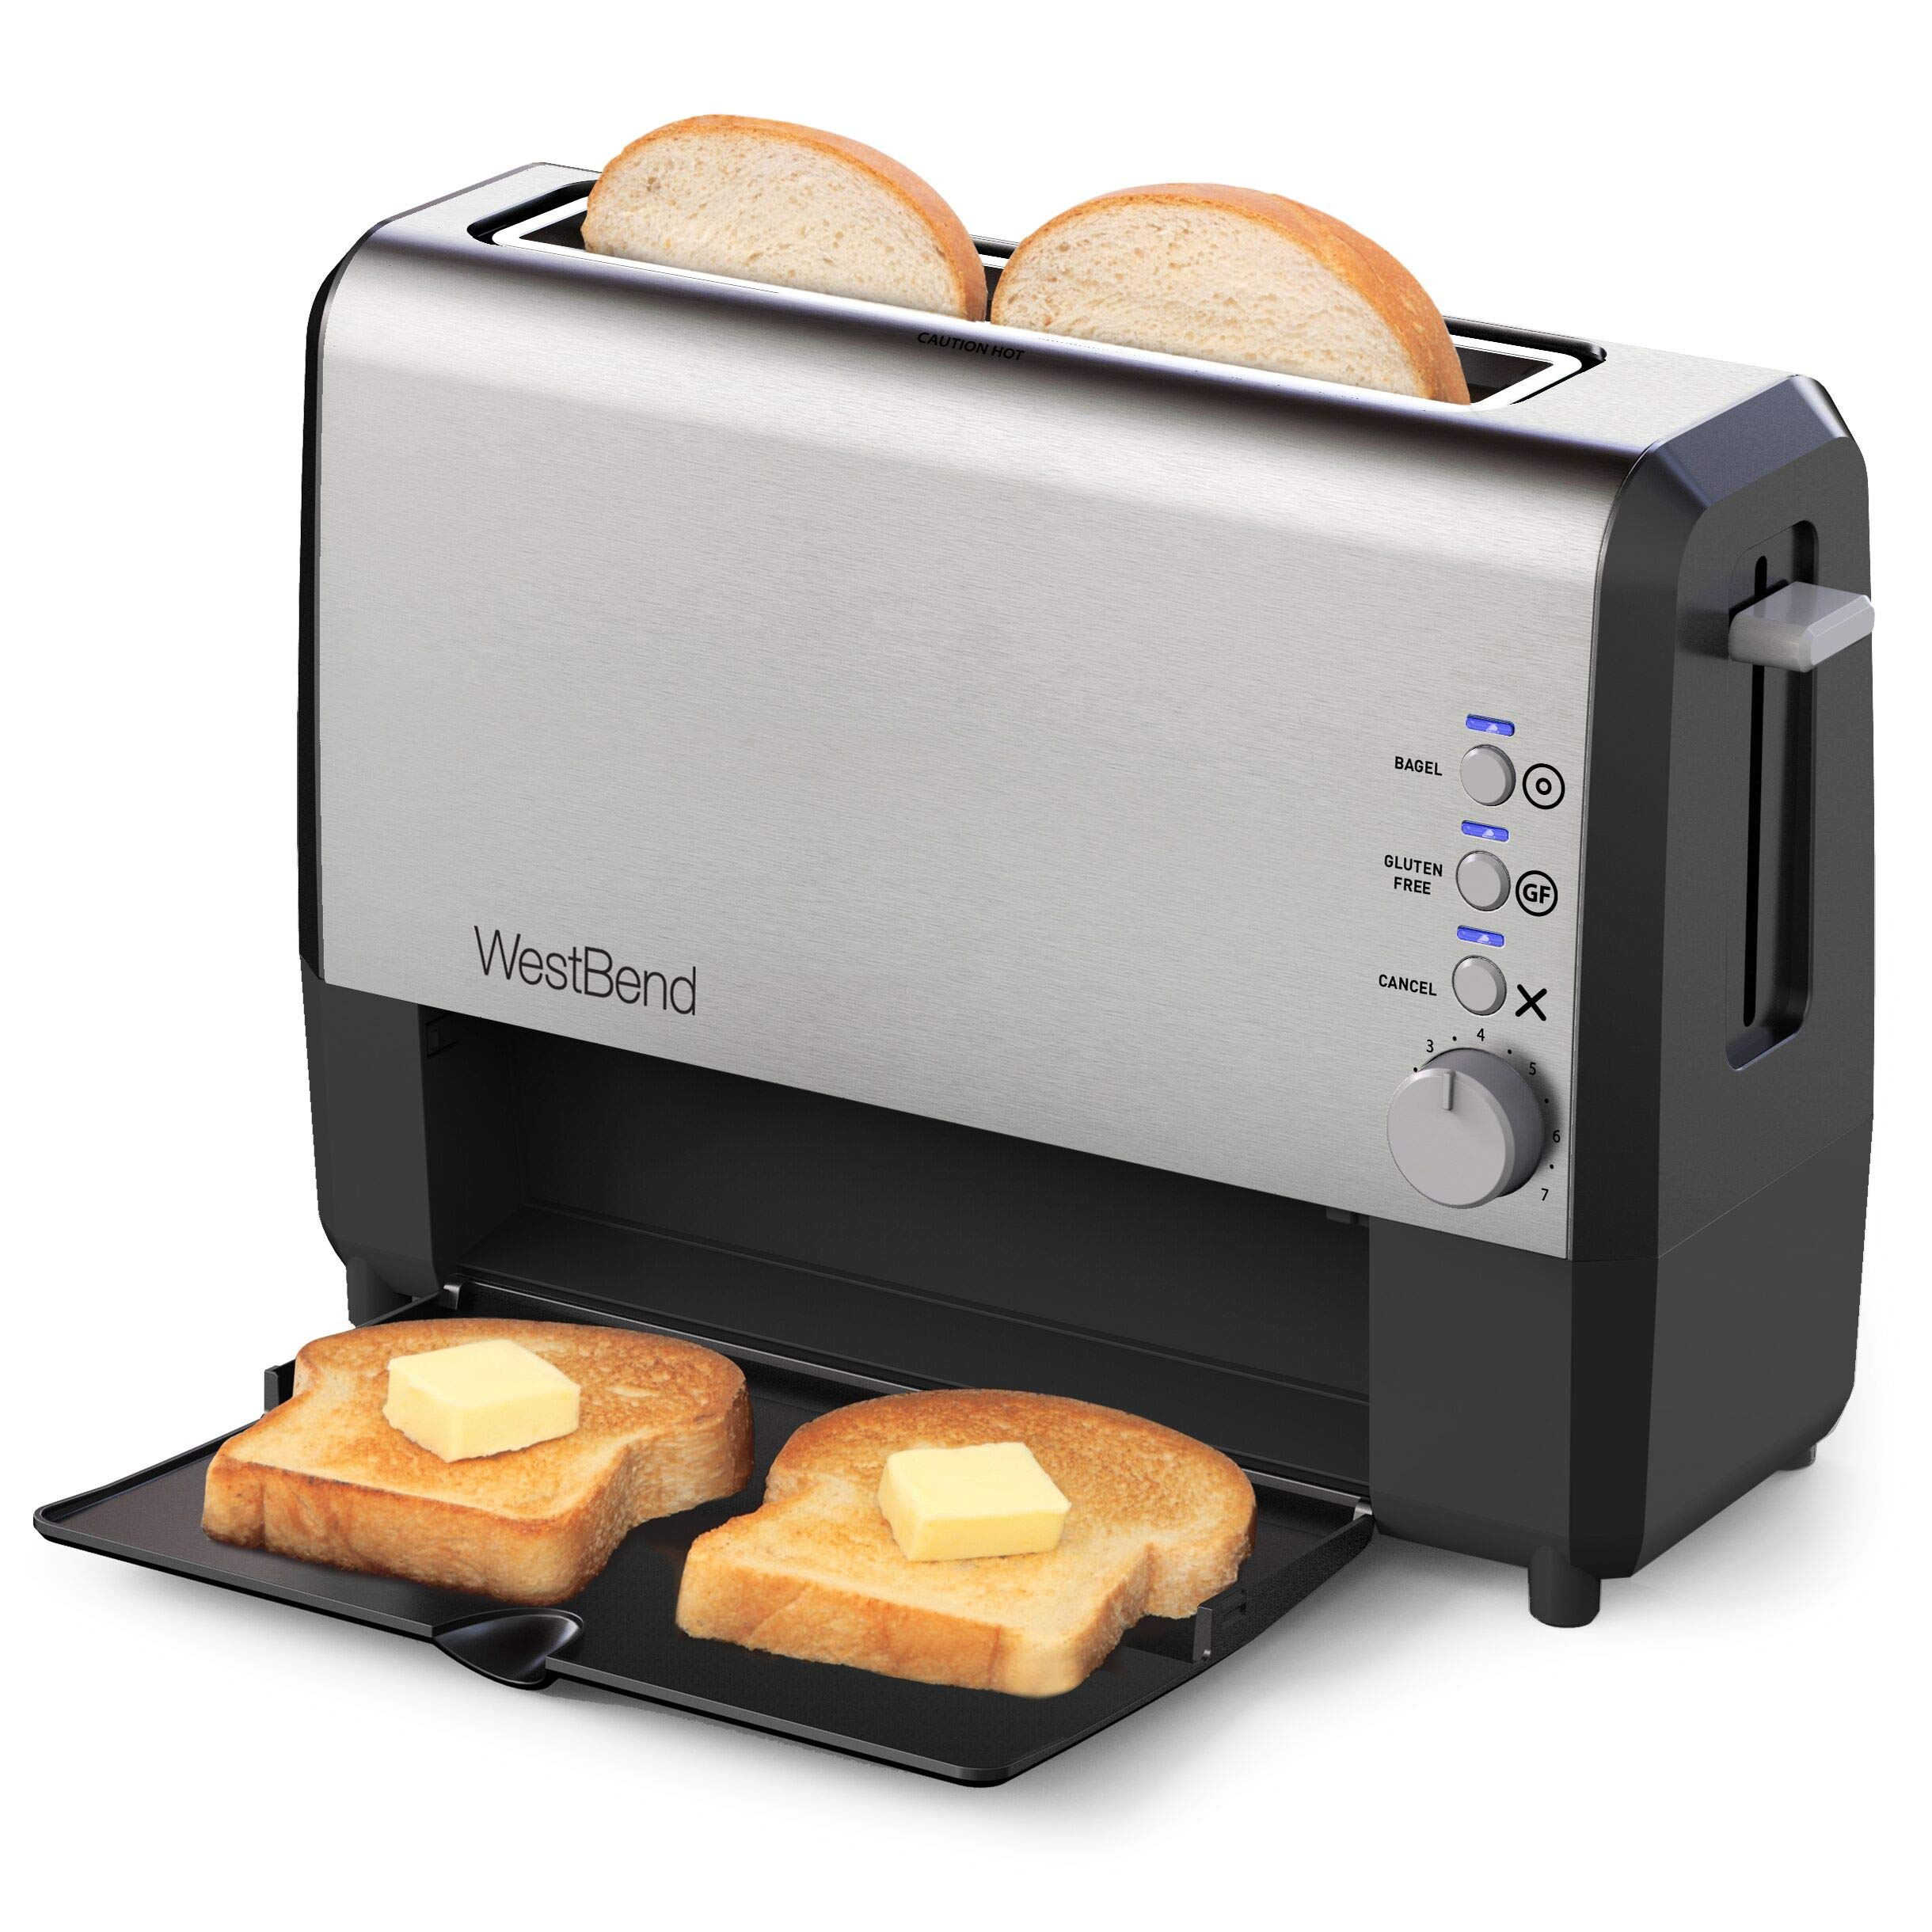 West Bend 77222 Quick Serve Wide Slot Toaster Bagel and Gluten-Free Settings with Cool Touch Exterior Includes Removable Serving Tray, 2-Slice, Silver by West Bend